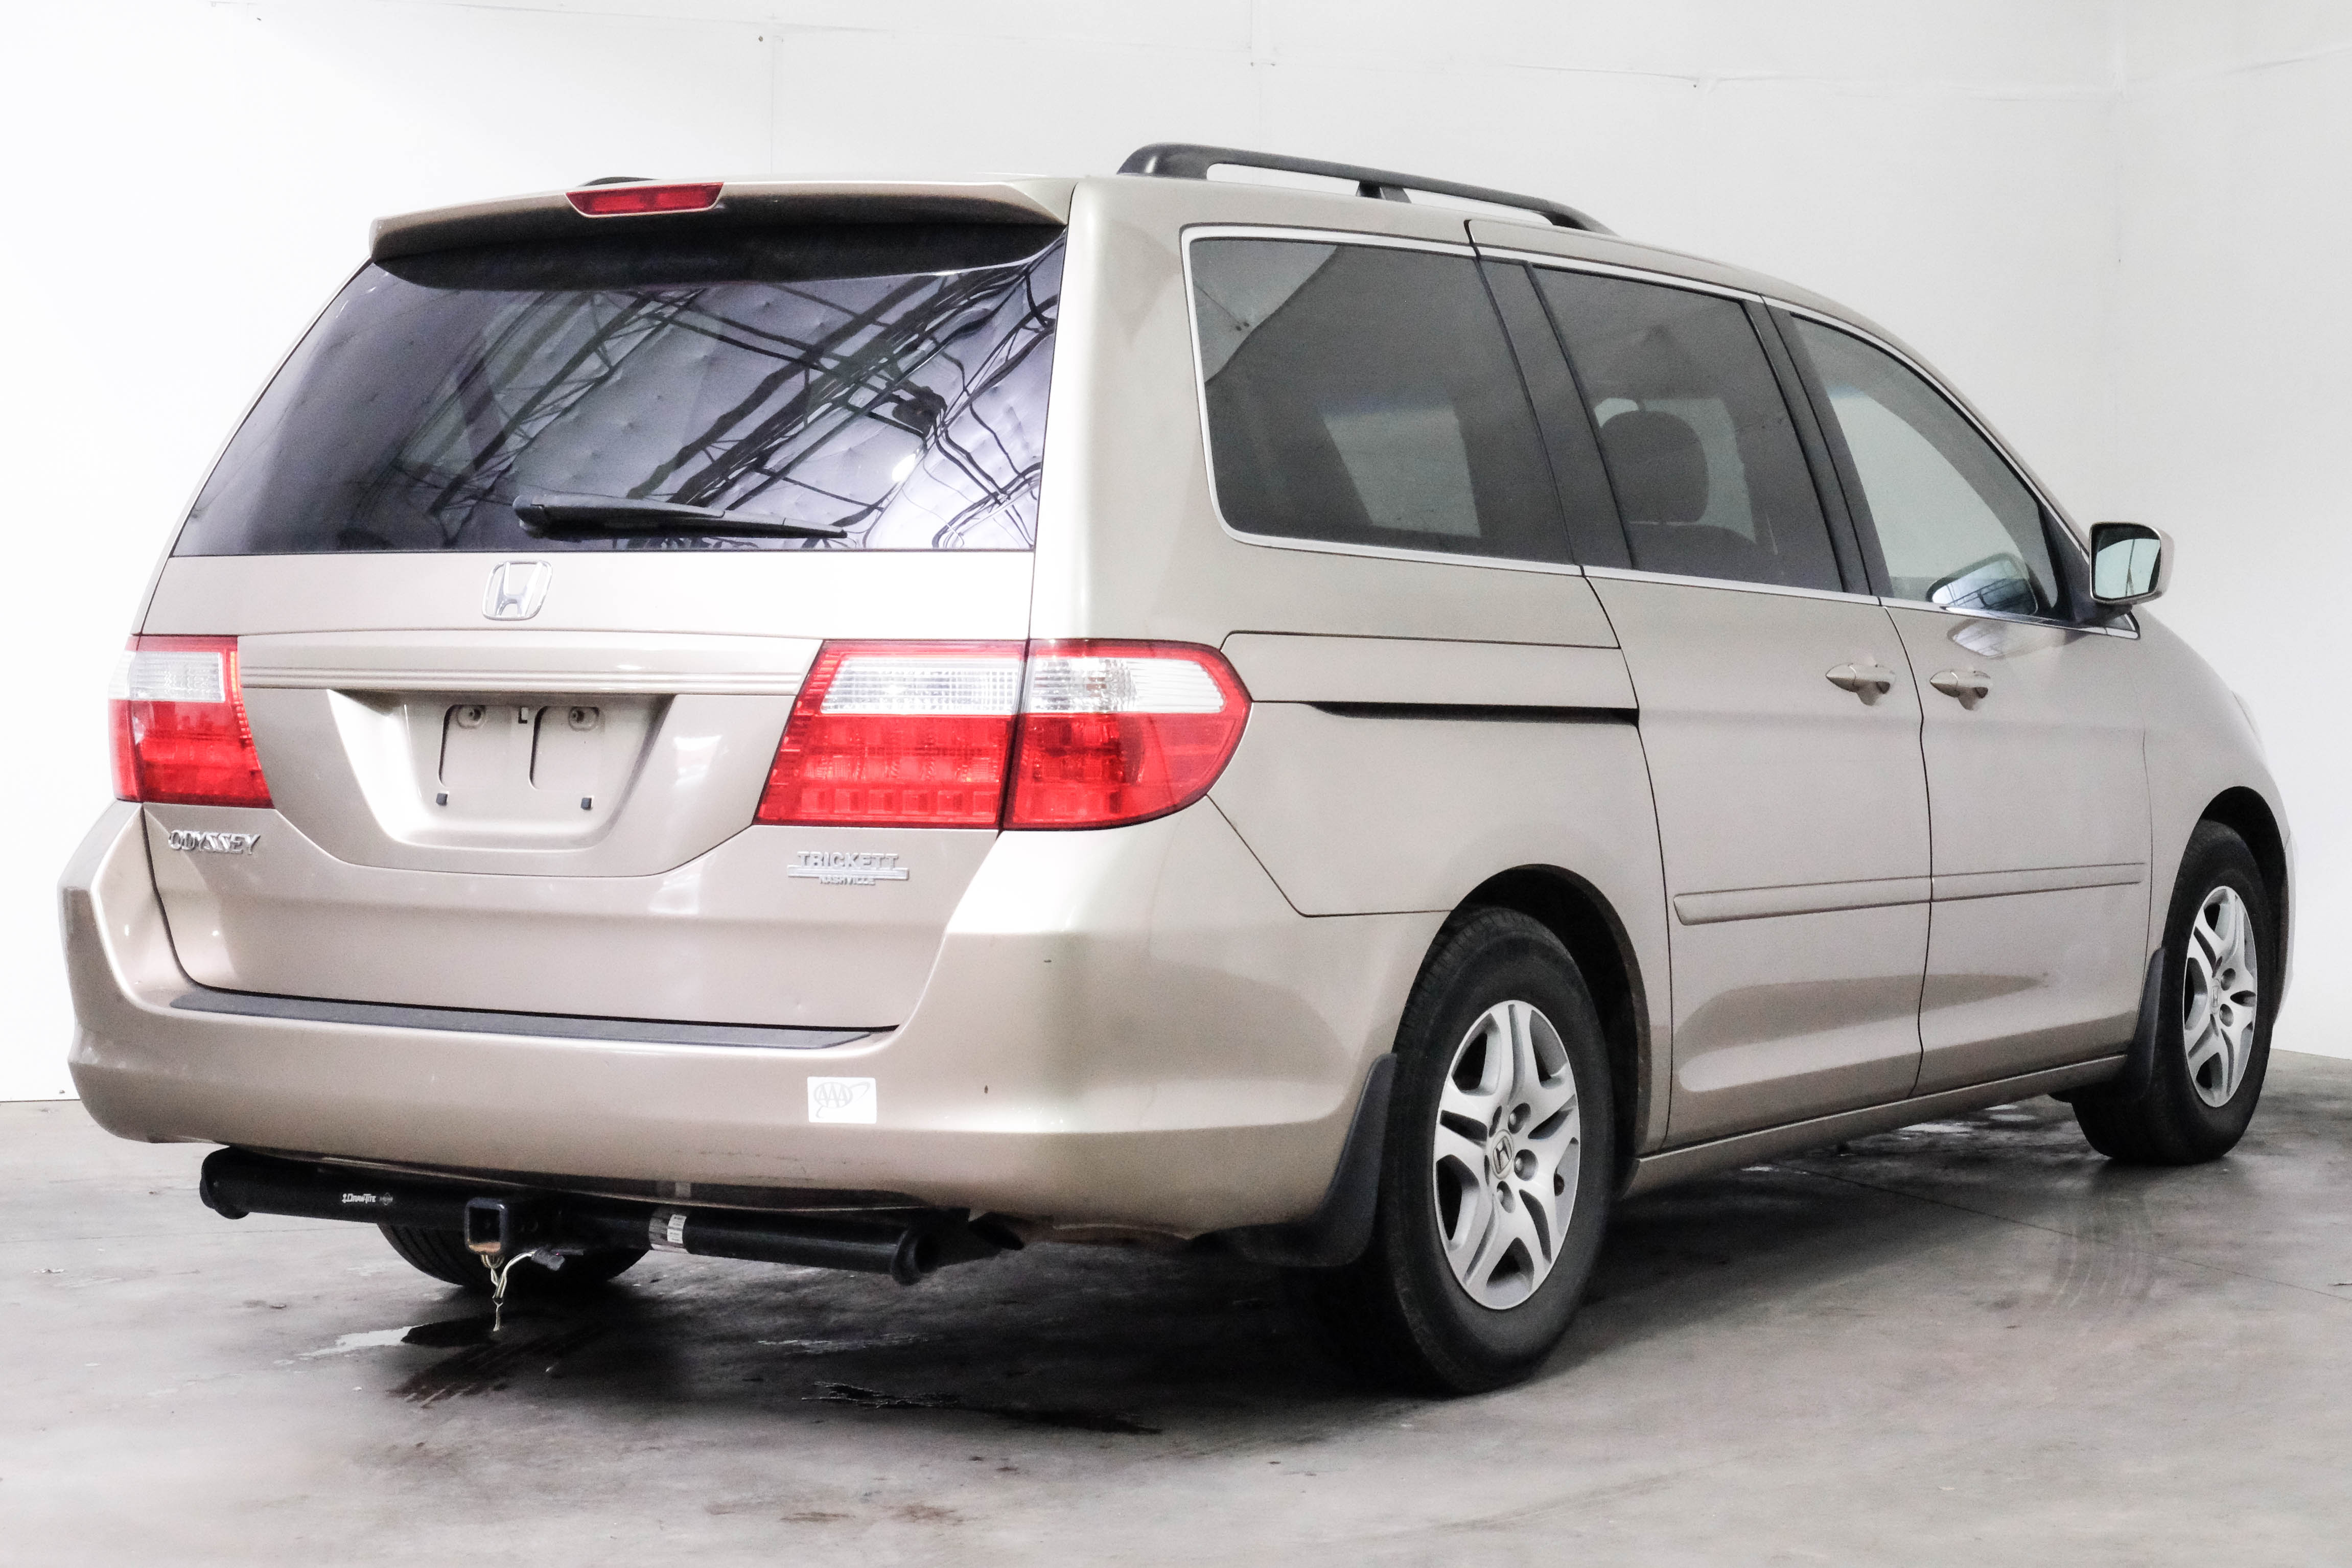 Used 2006 HONDA ODYSSEY EXL for sale in CARDEALS.NET PLANO ...